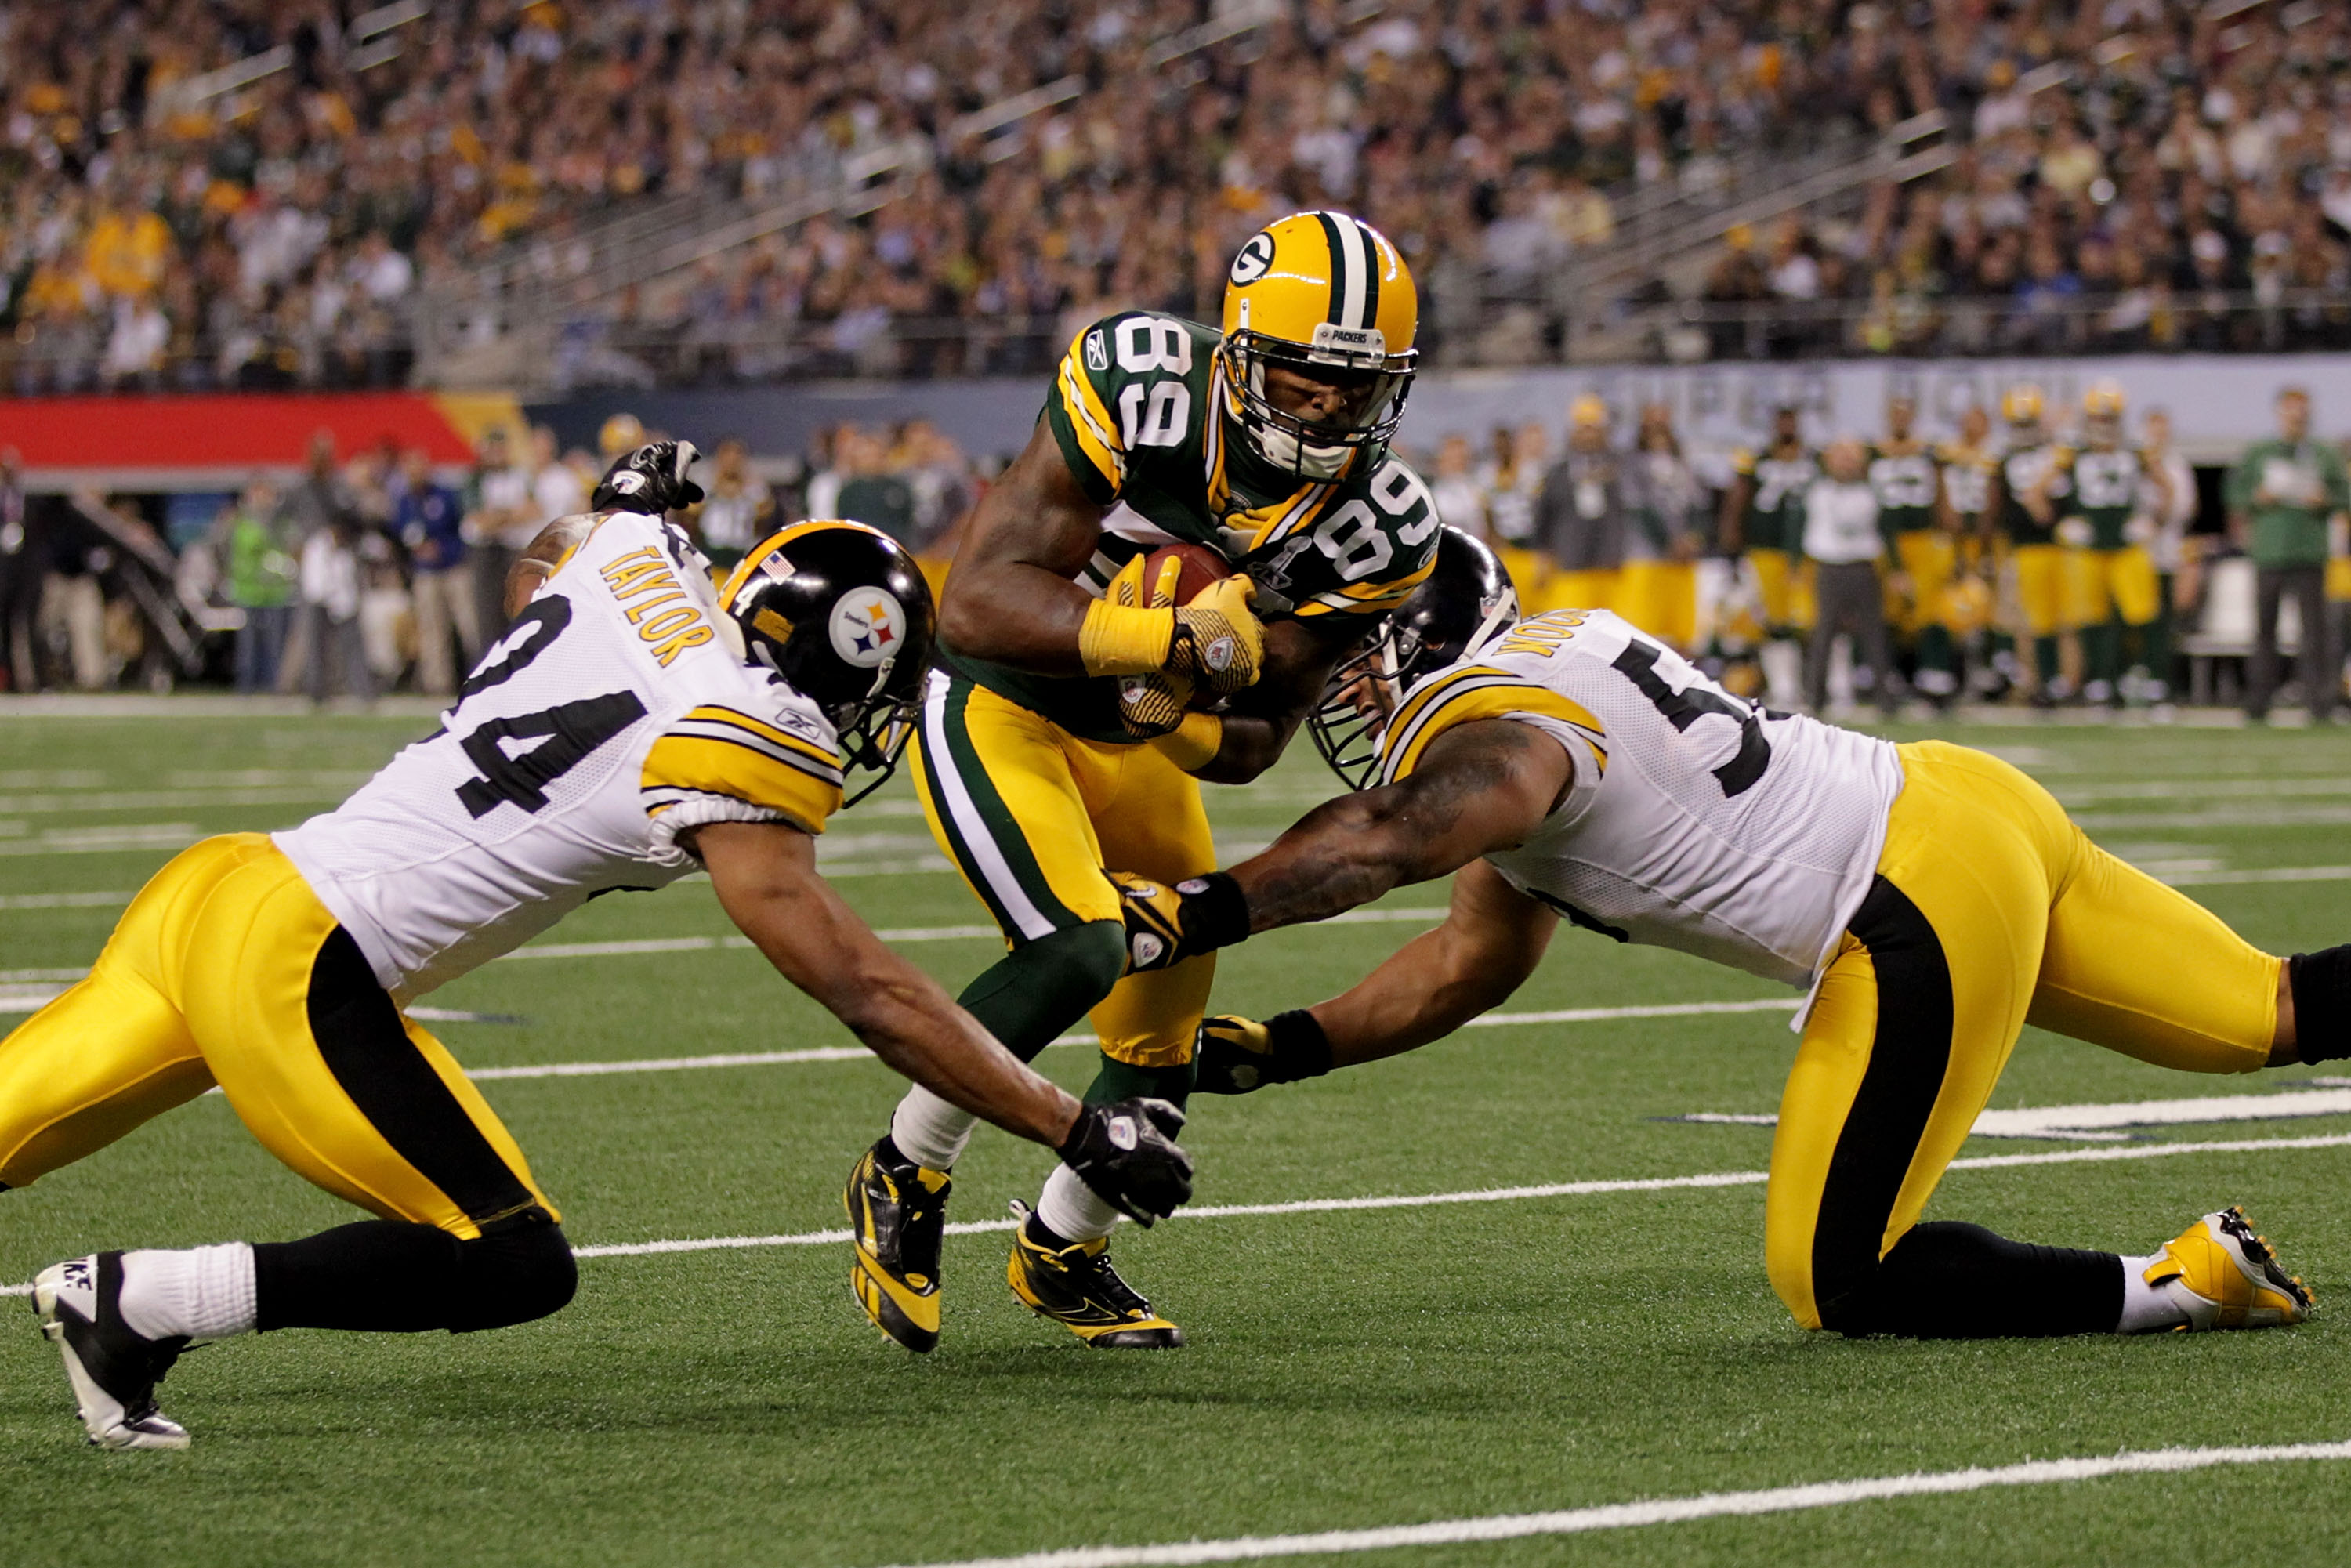 ARLINGTON, TX - FEBRUARY 06:  James Jones #89 of the Green Bay Packers tries to avoid the tackle of LaMarr Woodley #56 and Ike Taylor #24 of the Pittsburgh Steelers and during Super Bowl XLV at Cowboys Stadium on February 6, 2011 in Arlington, Texas.  (Ph